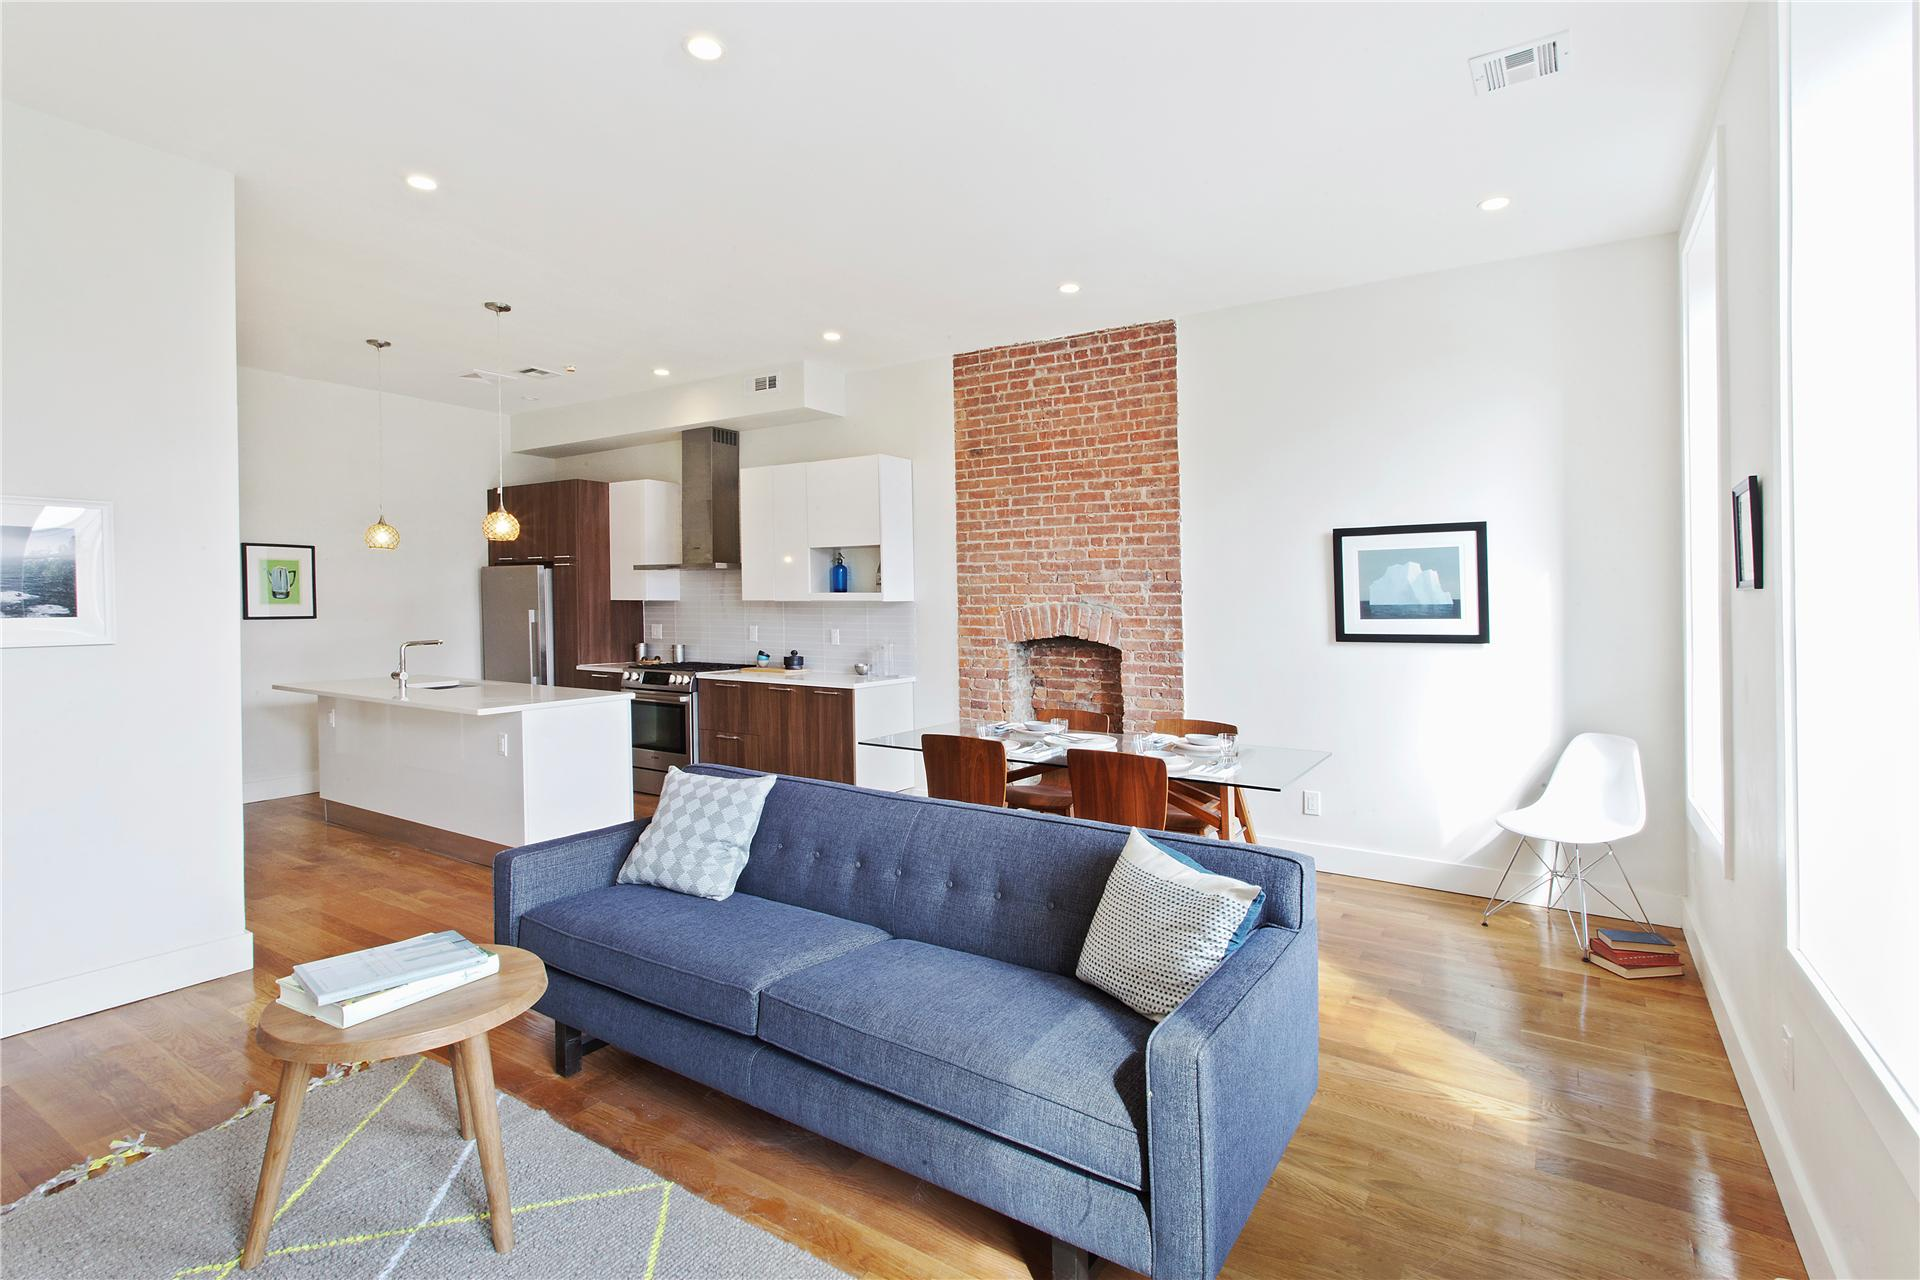 Condominium for Sale at 139-141 West 126th Street New York, New York 10027 United States